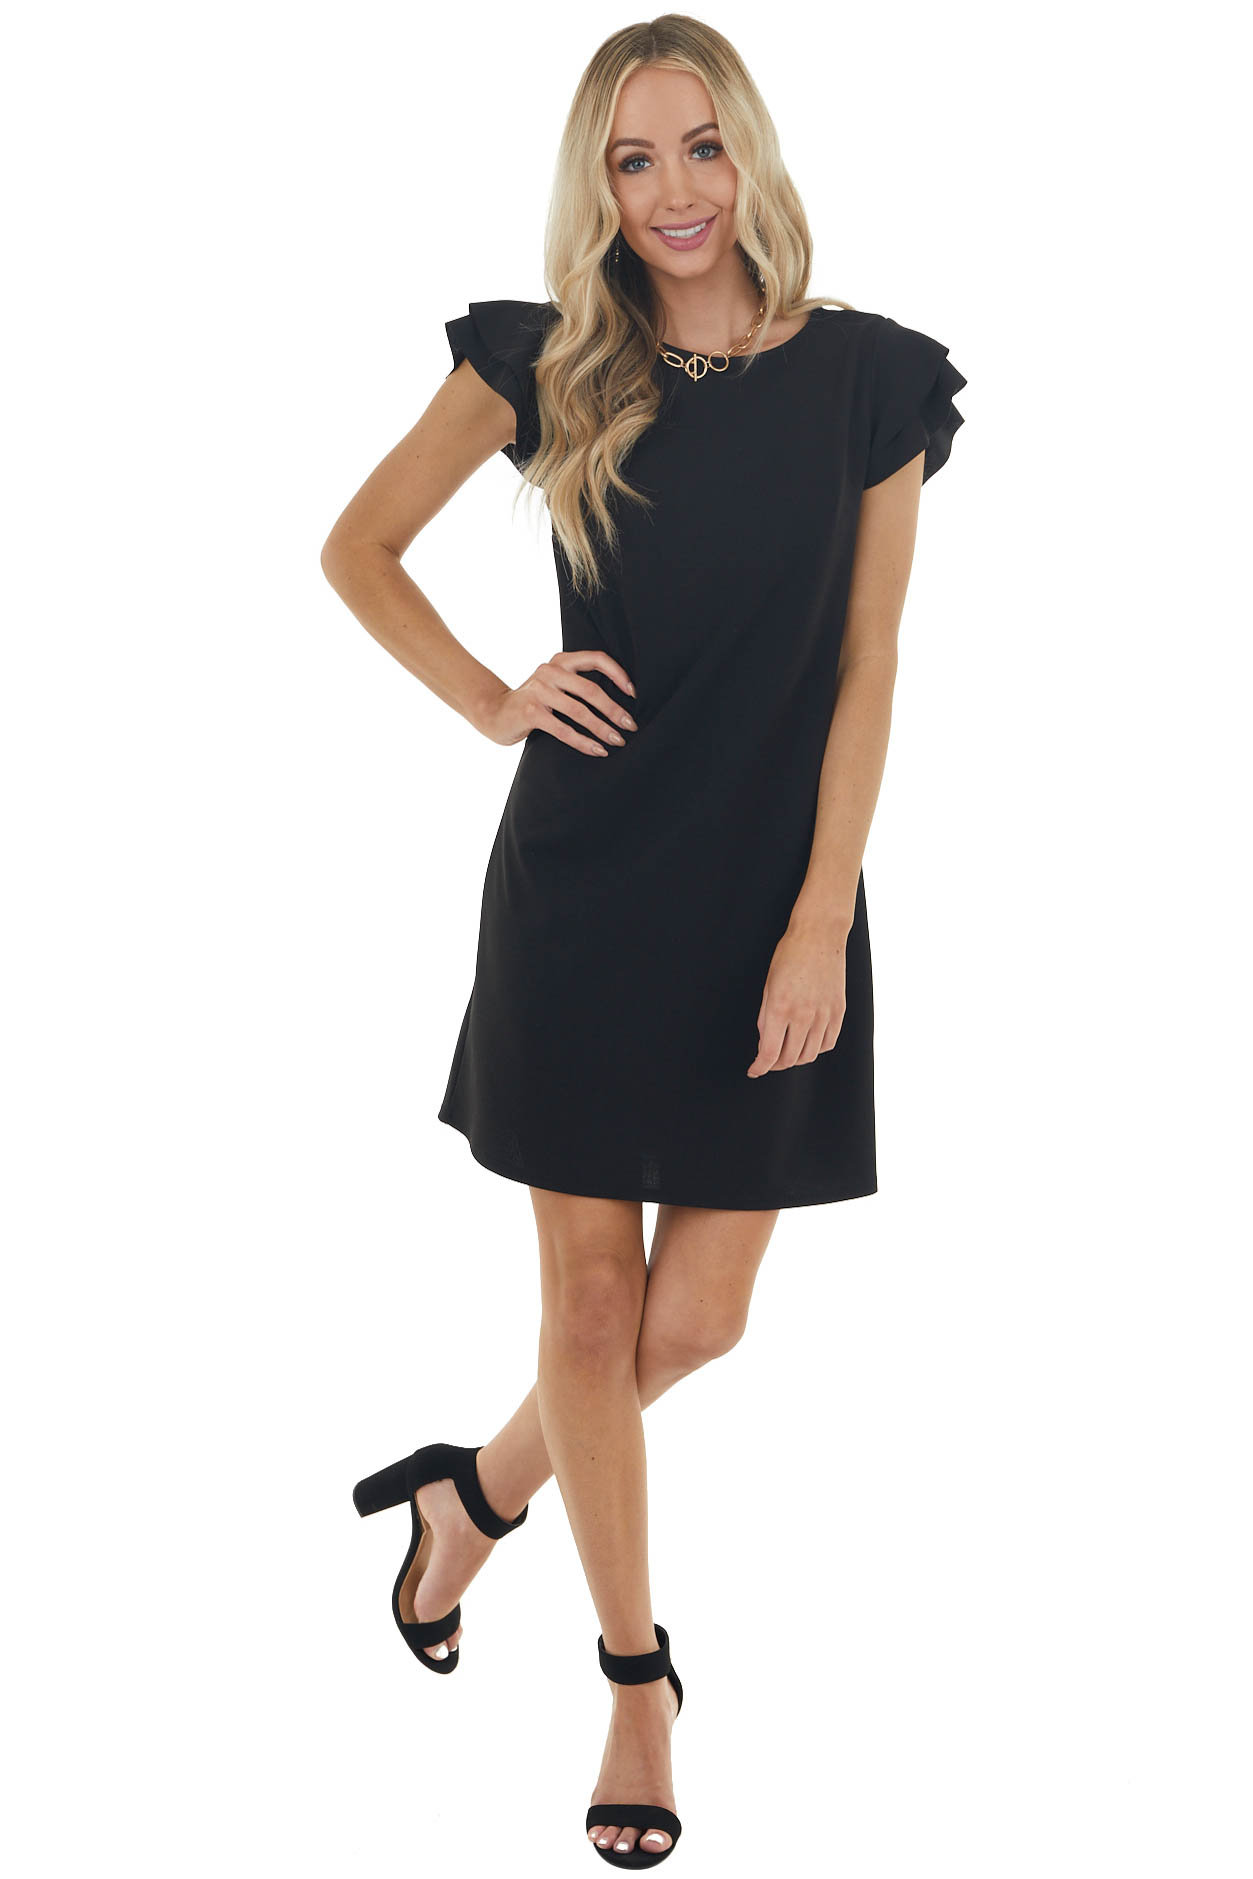 Black Knit Short Dress with Layered Ruffle Cap Sleeves